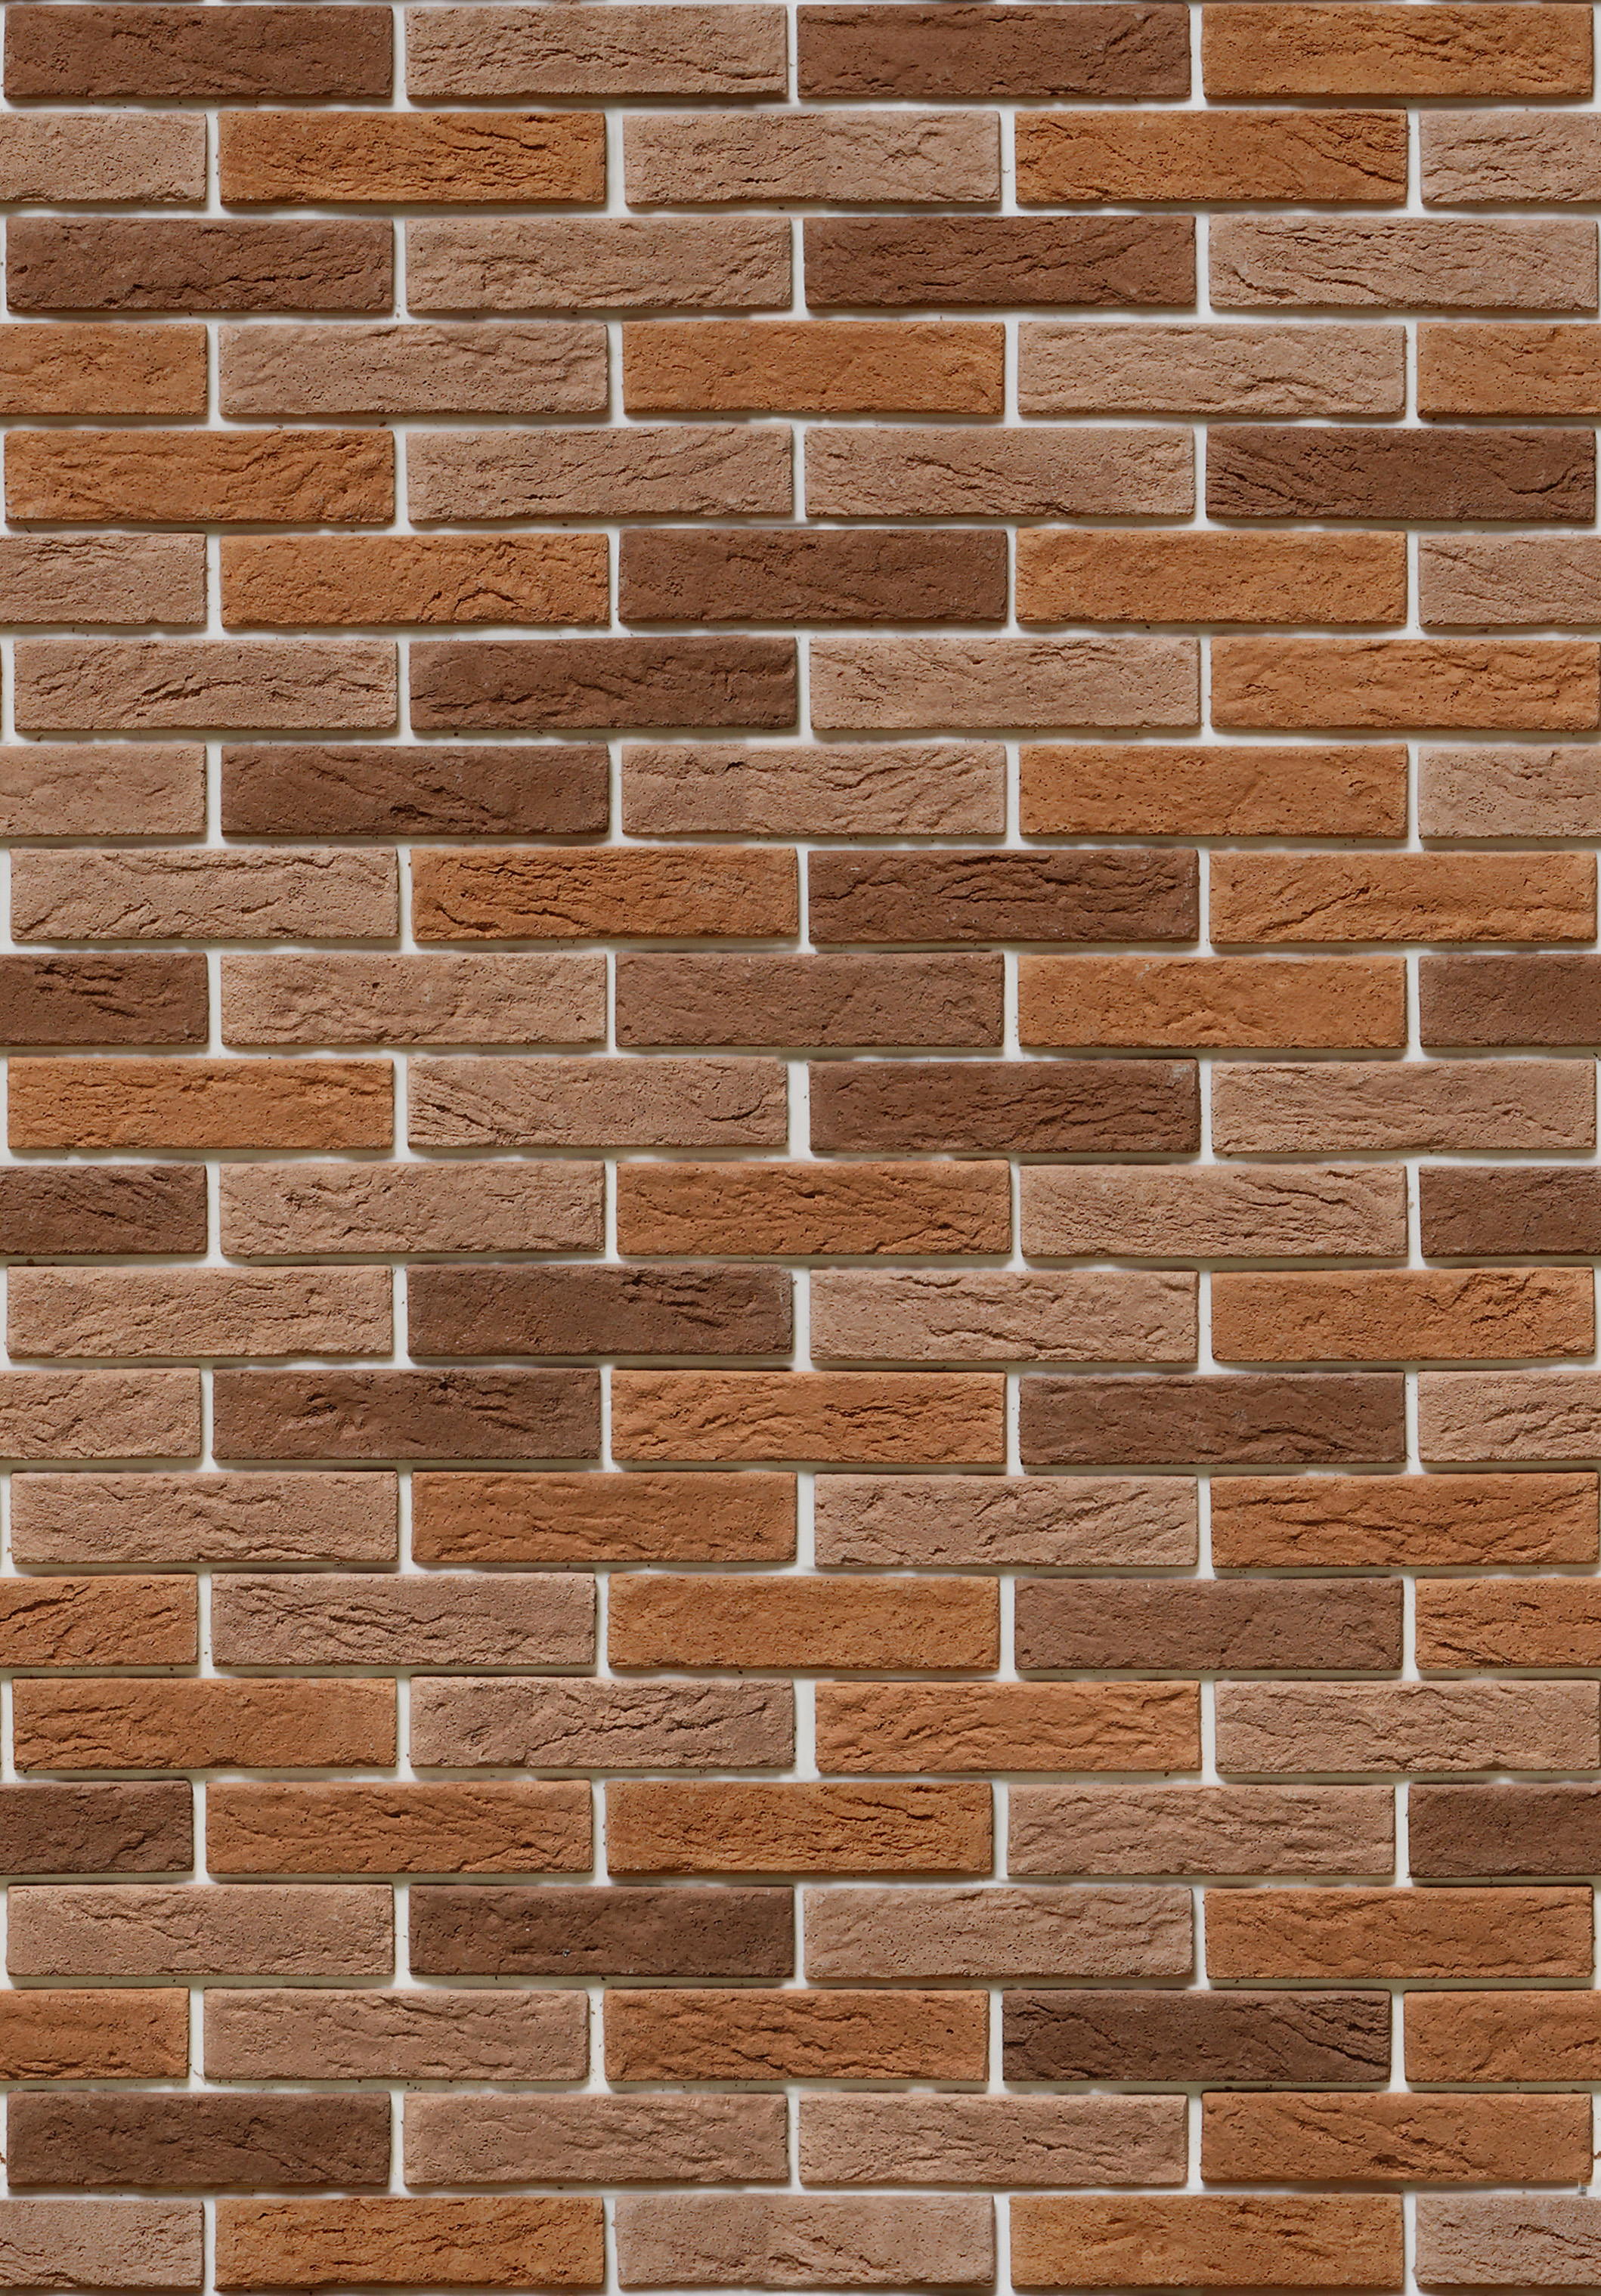 amazing masonry bricks Part - 2: amazing masonry bricks nice ideas